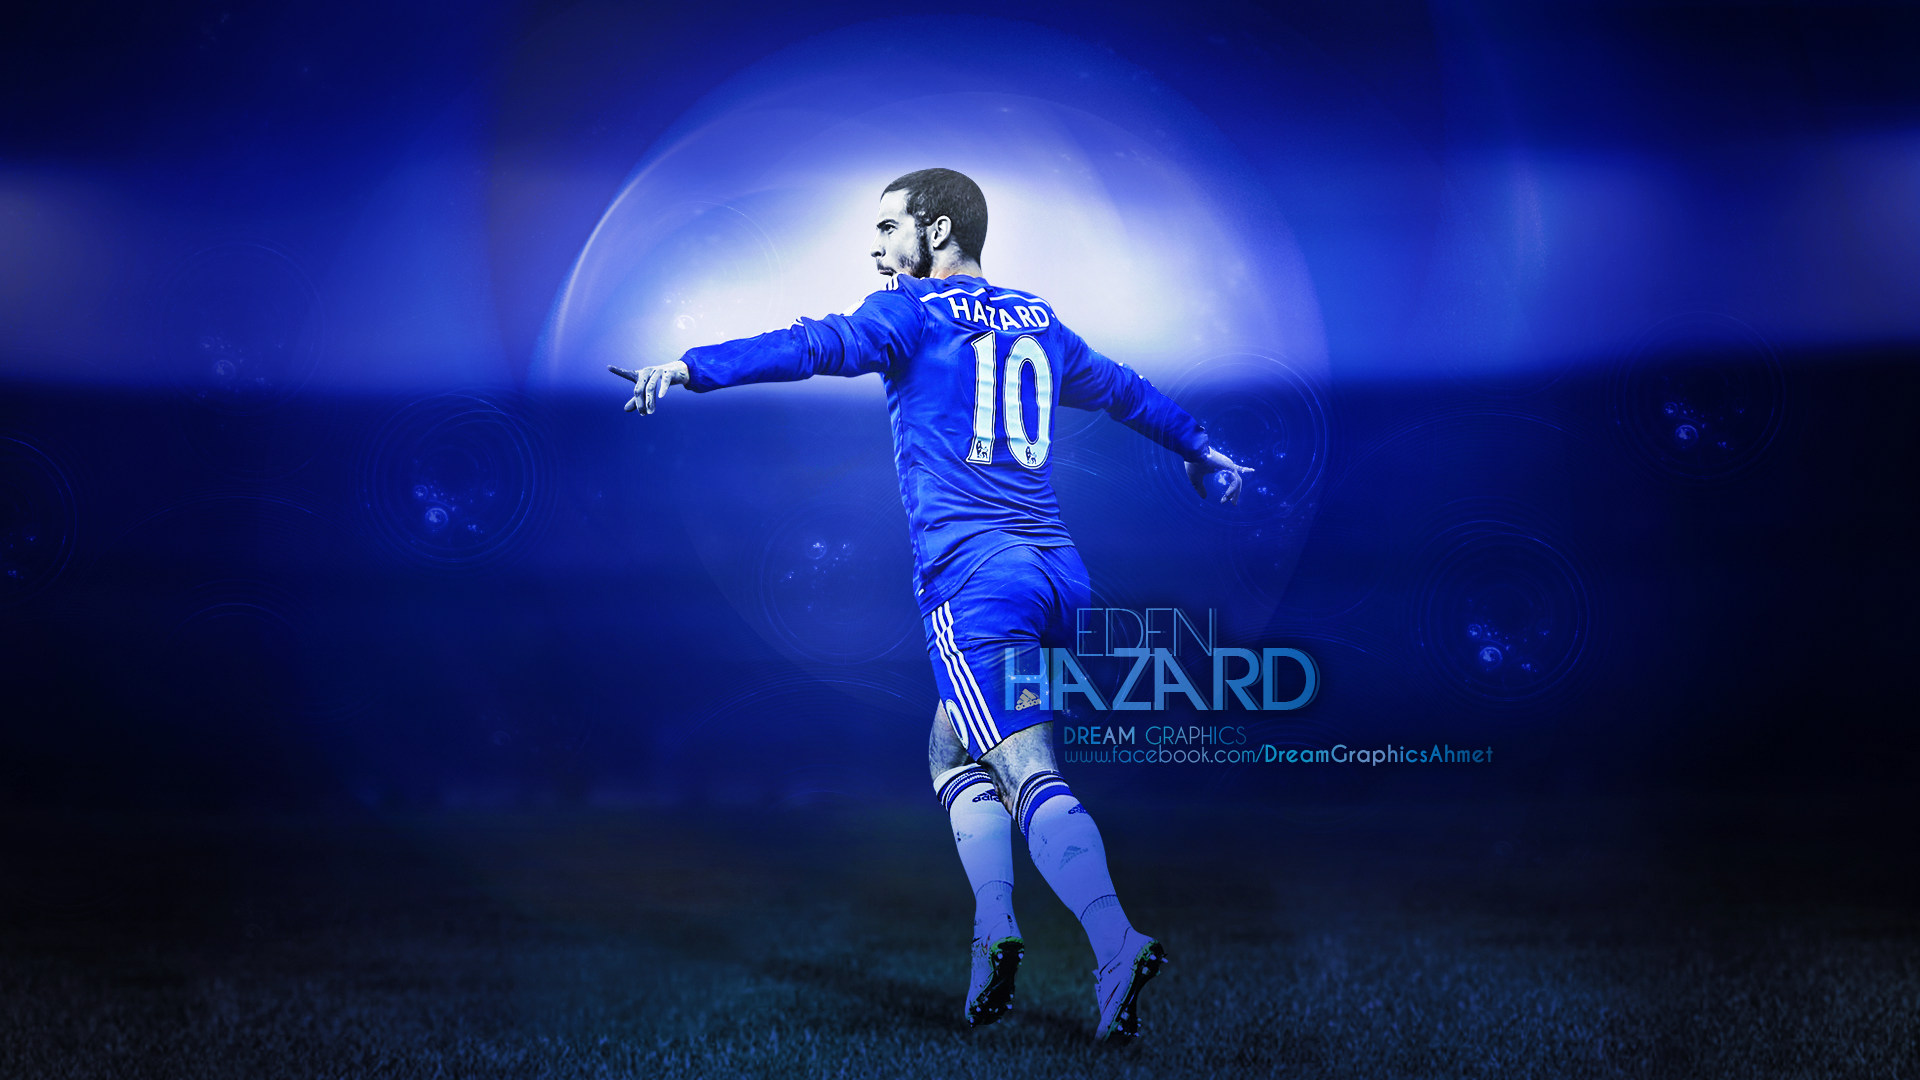 hazard wallpaper 2015 by dreamgraphicss watch customization wallpaper ...